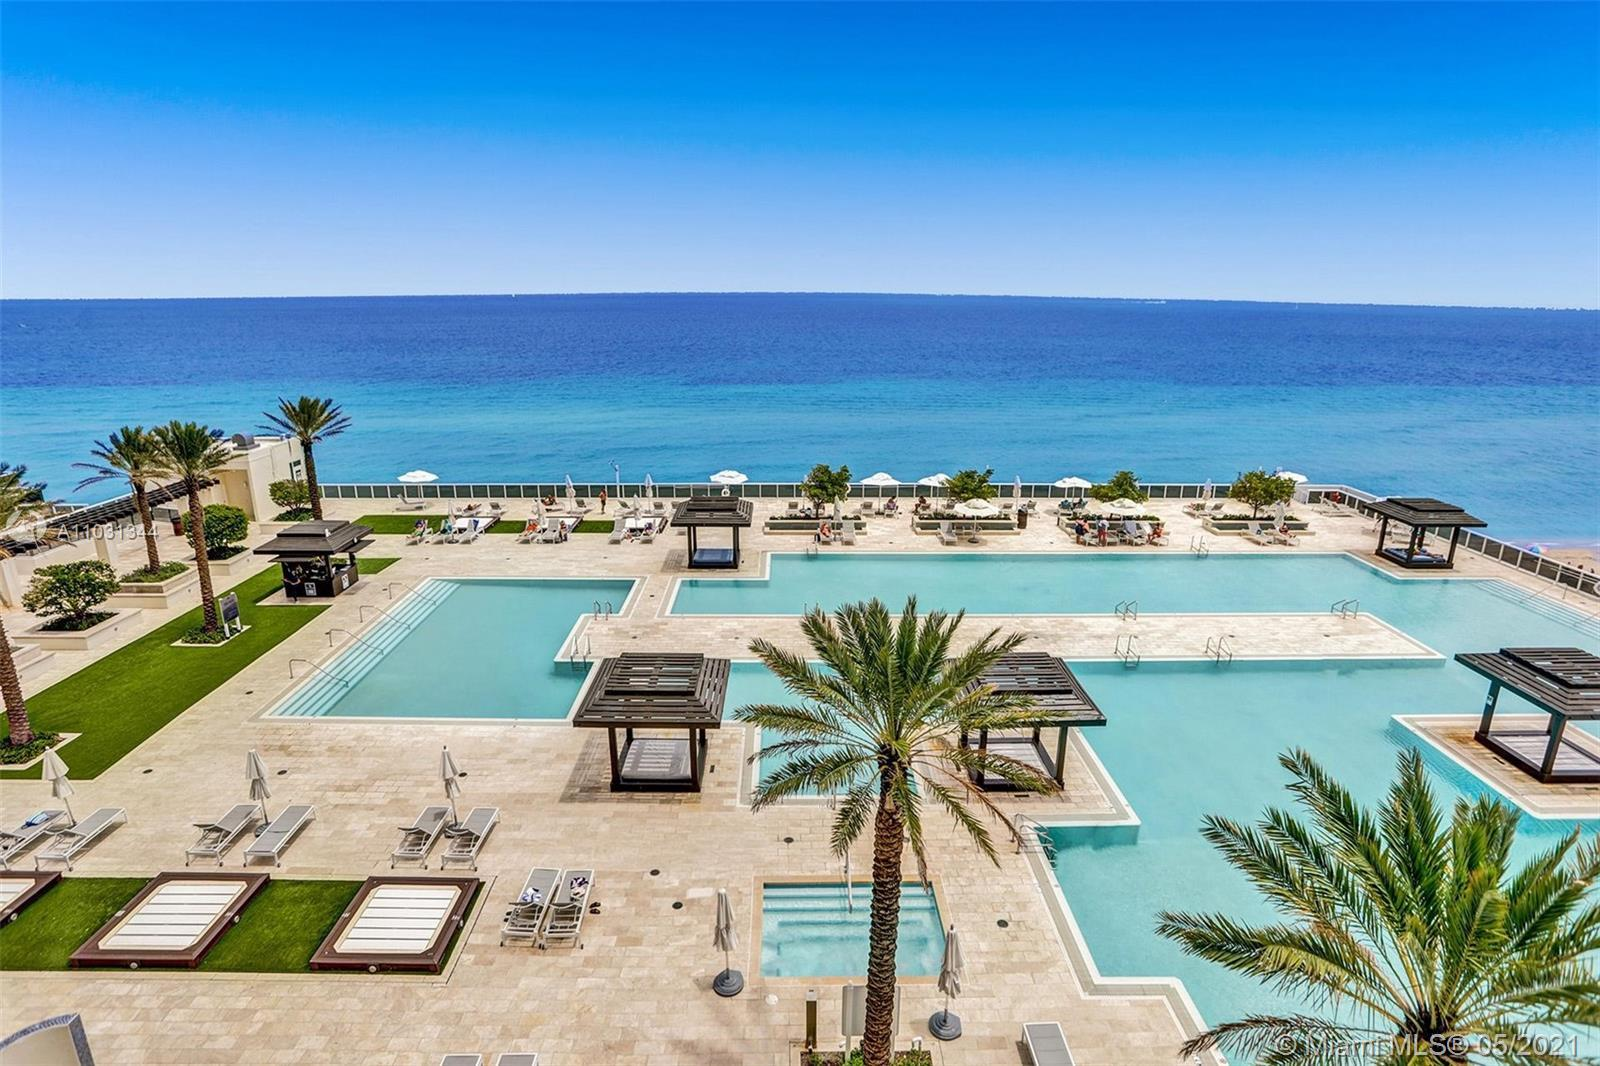 BREATHTAKING DIRECT OCEAN VIEWS FROM EVERY ROOM OF THIS DESIRABLE 3 BED/3.5 BATHS, 2,078 SQ.FT. CORN